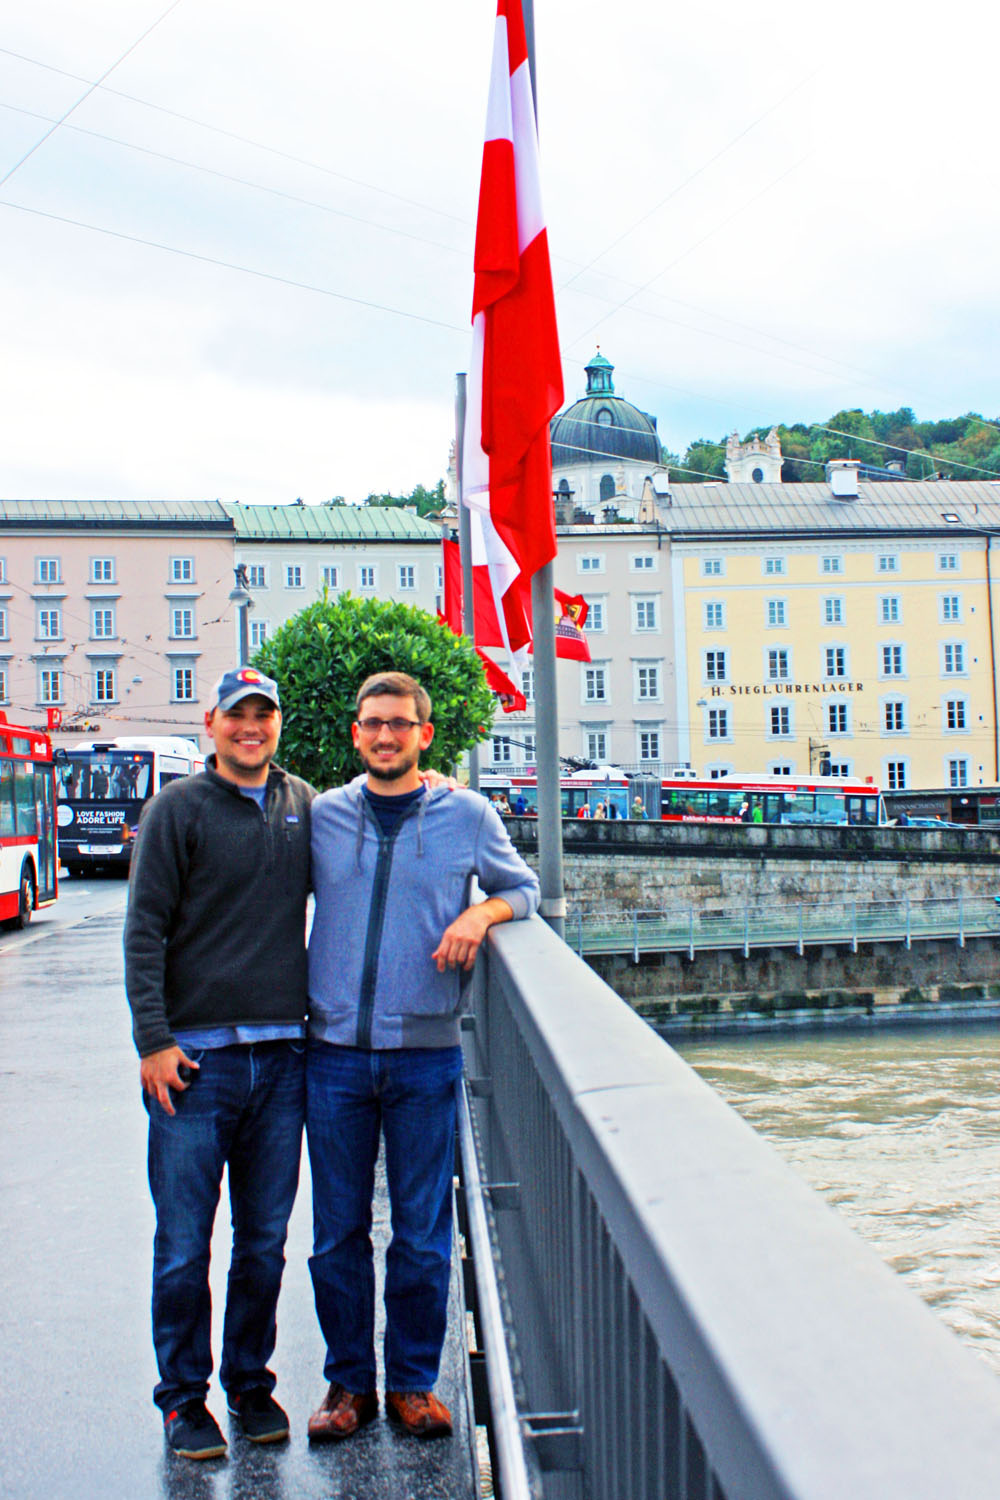 Dan and Kevin strike a pose on a bridge over the Salzach River.